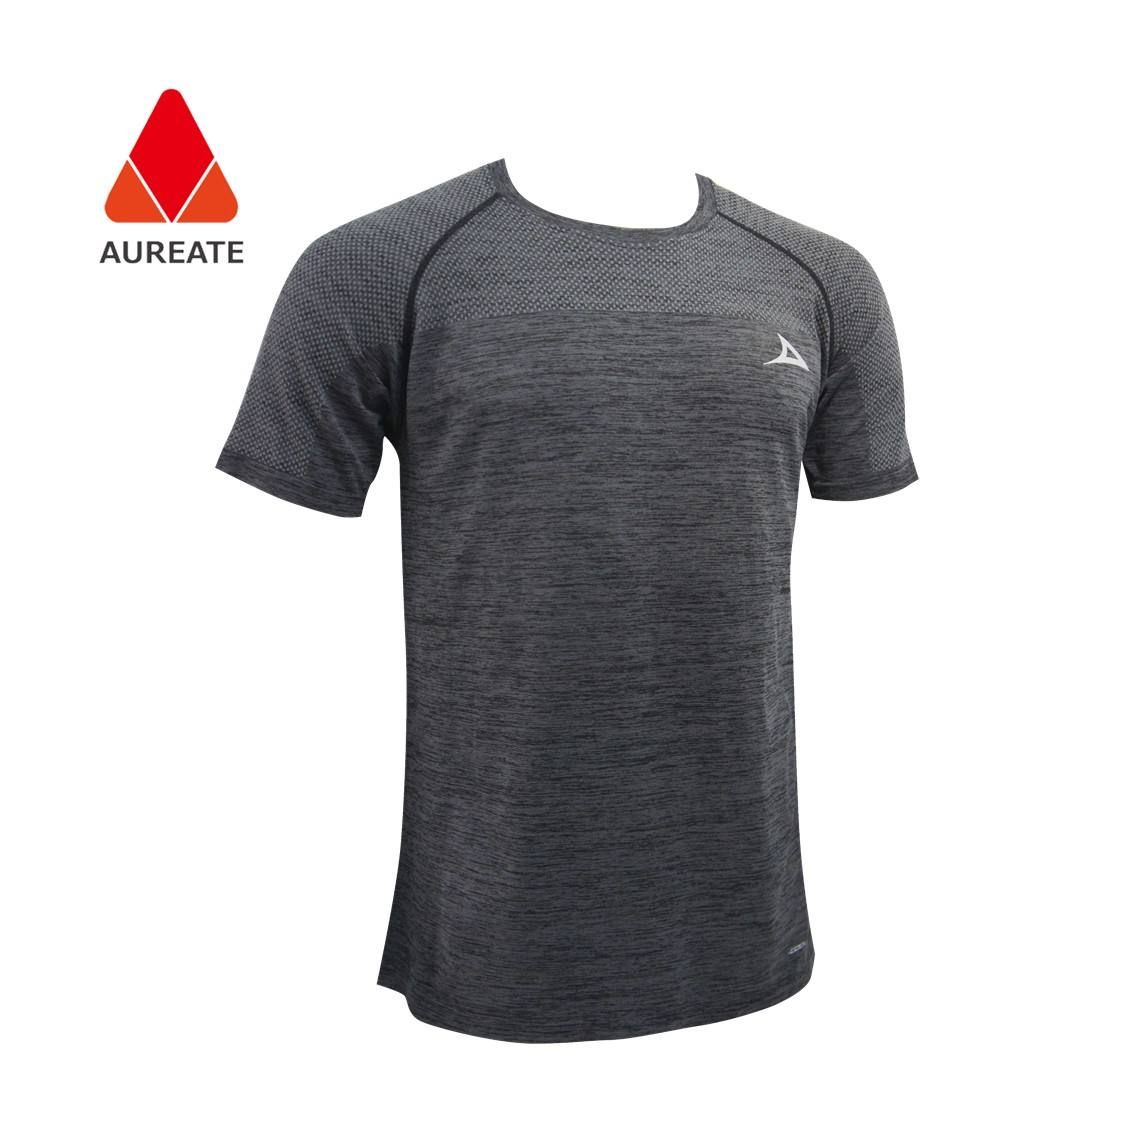 Seamless t shirt tshirt apparel custom men women clothes sports corner running label 220 magic character turtleneck